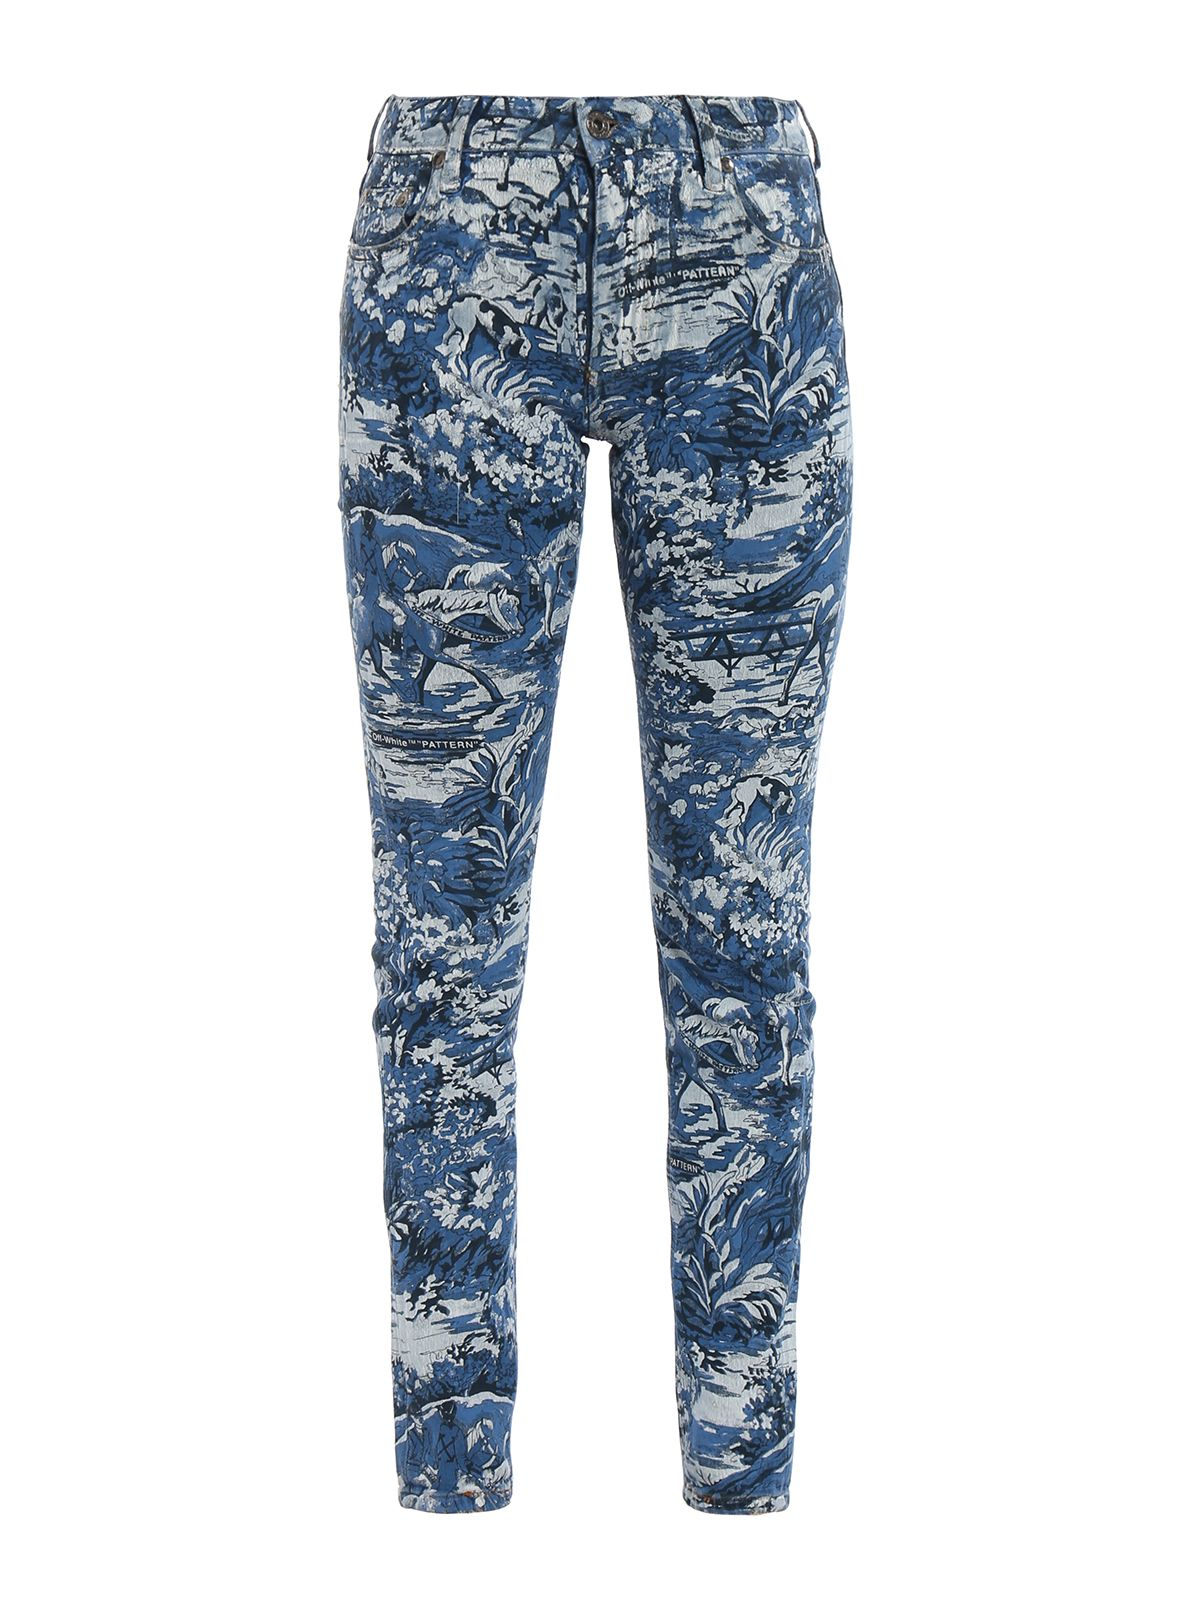 OFF-WHITE OFF-WHITE PRINTED DETAIL JEANS